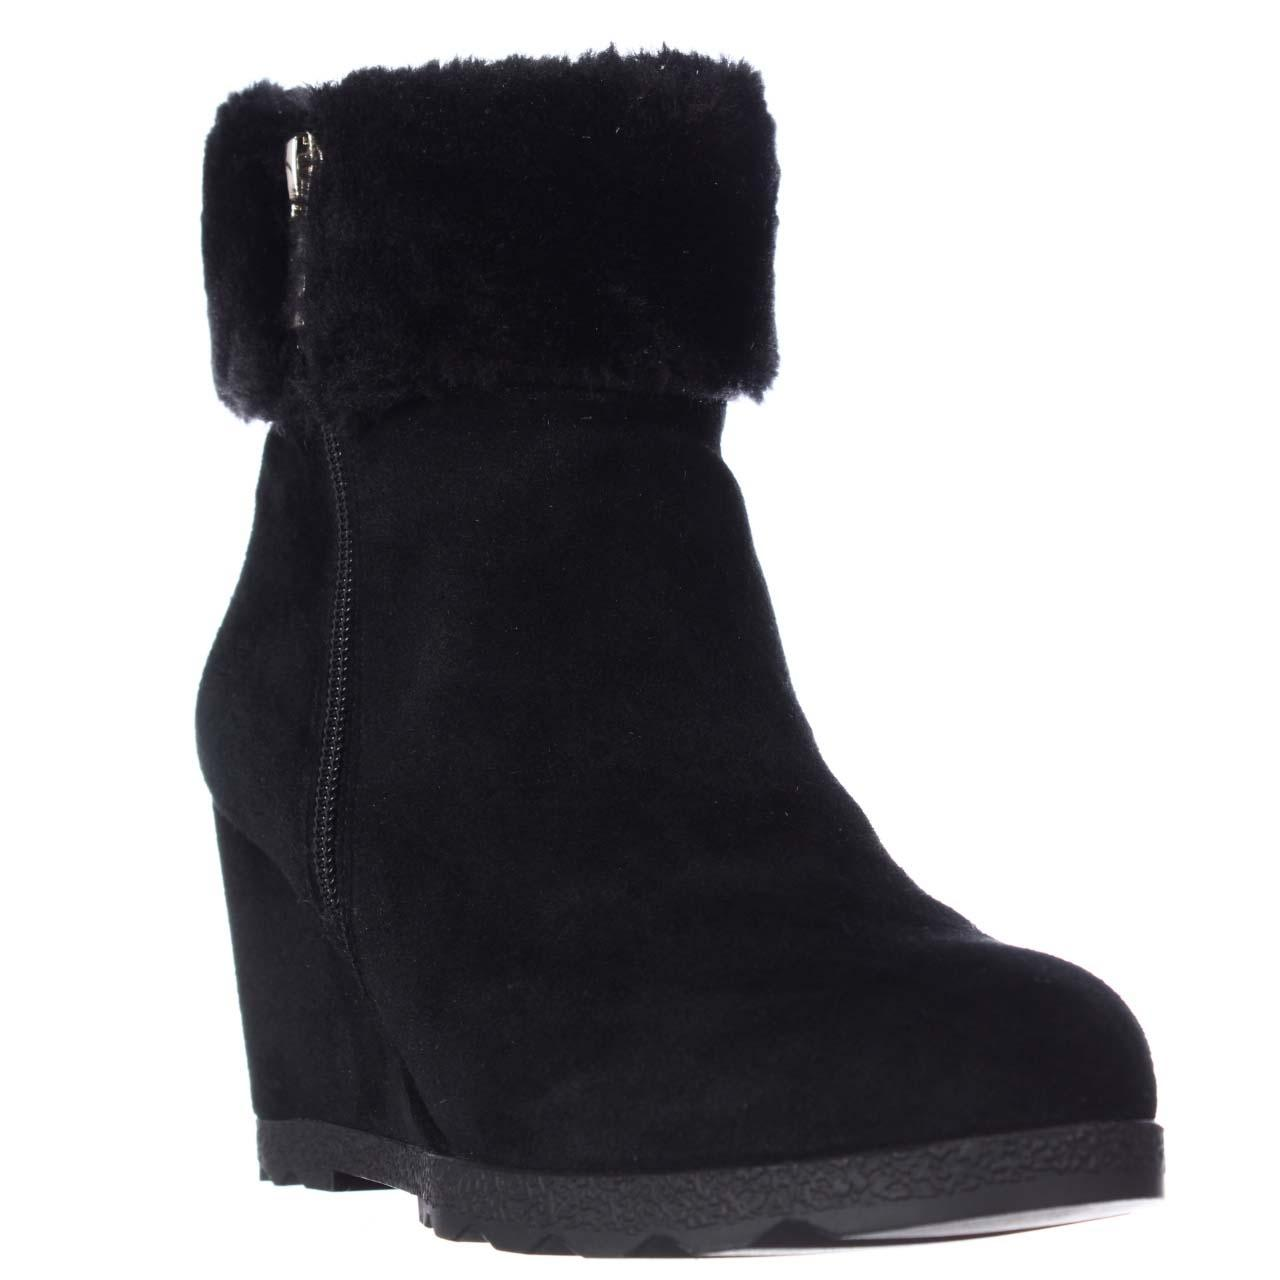 c2fecfd9d5a Black Oreena Wedge Winter Ankle Boots Booties Boots Booties Boots Booties  Size US 5.5 Regular (M